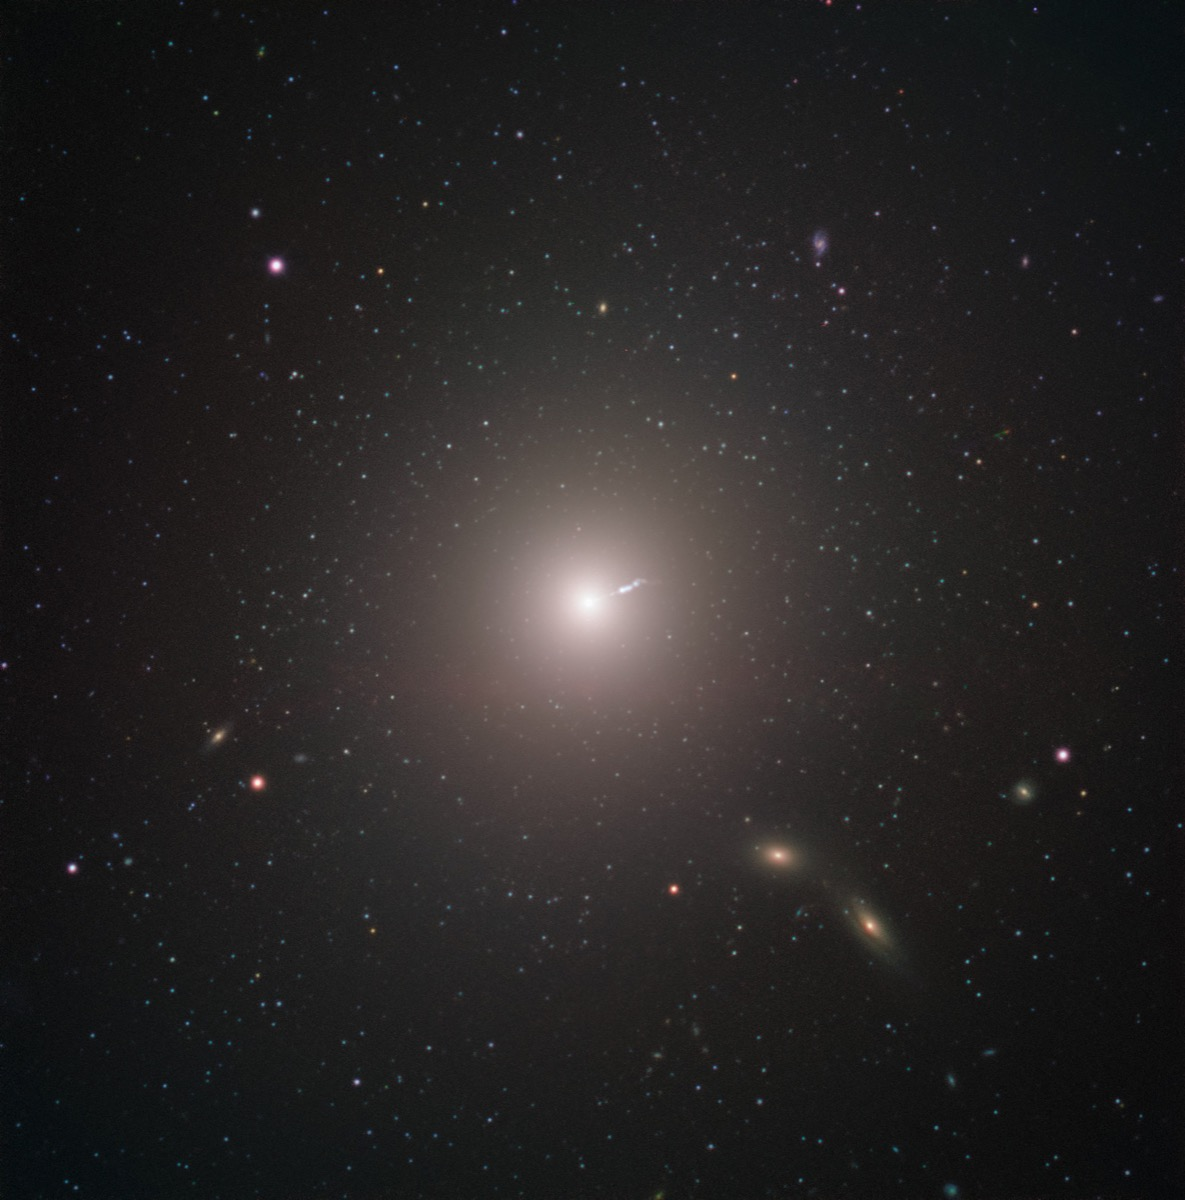 a bright pinpoint in the middle of a starfield. the bright pinpoint is the messier galaxy